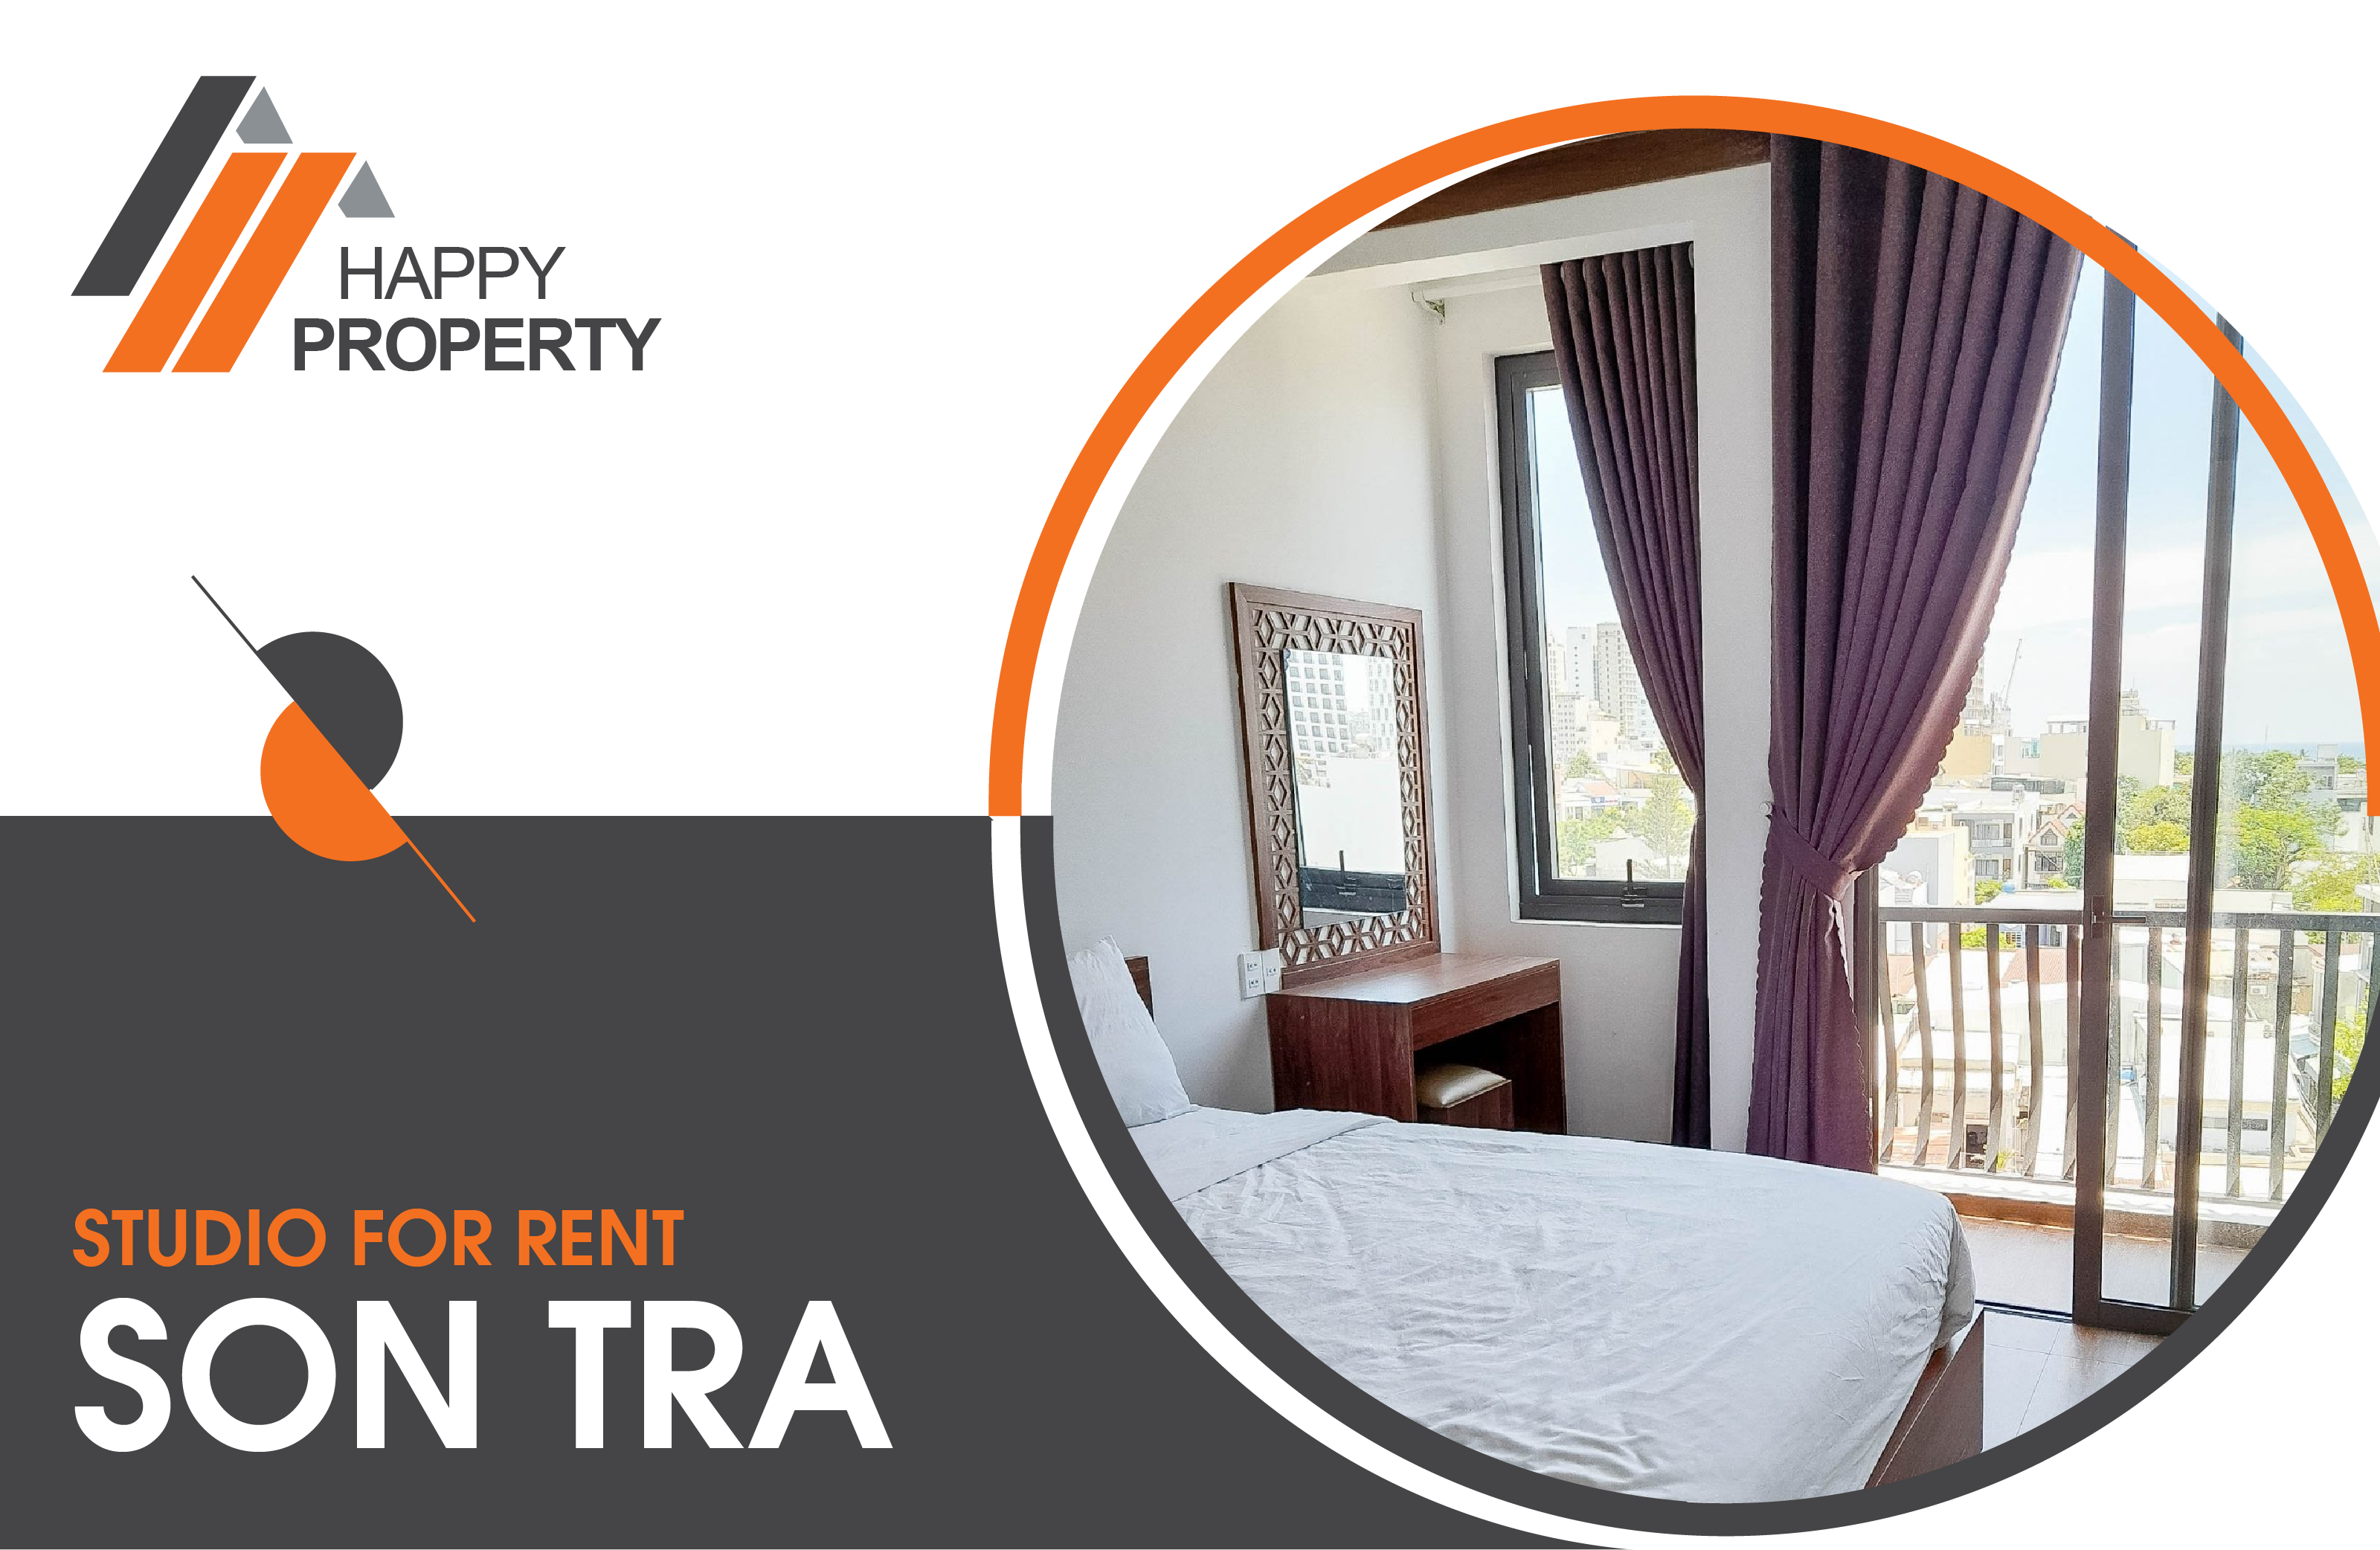 2 Bedroom Tony Apartment For Rent – ST04